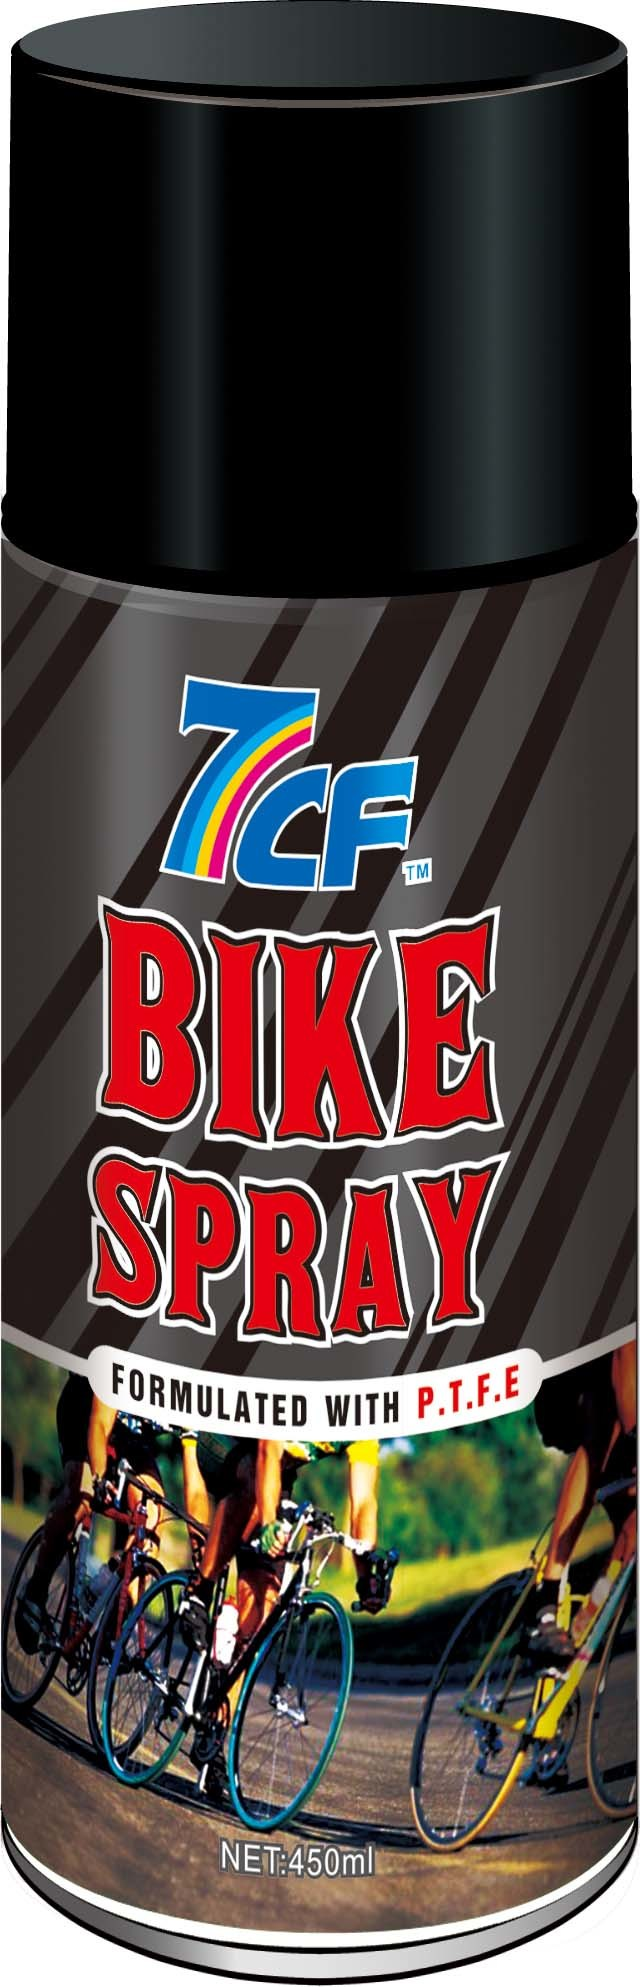 bike spray paint china spray painting bike best spray paint for. Black Bedroom Furniture Sets. Home Design Ideas